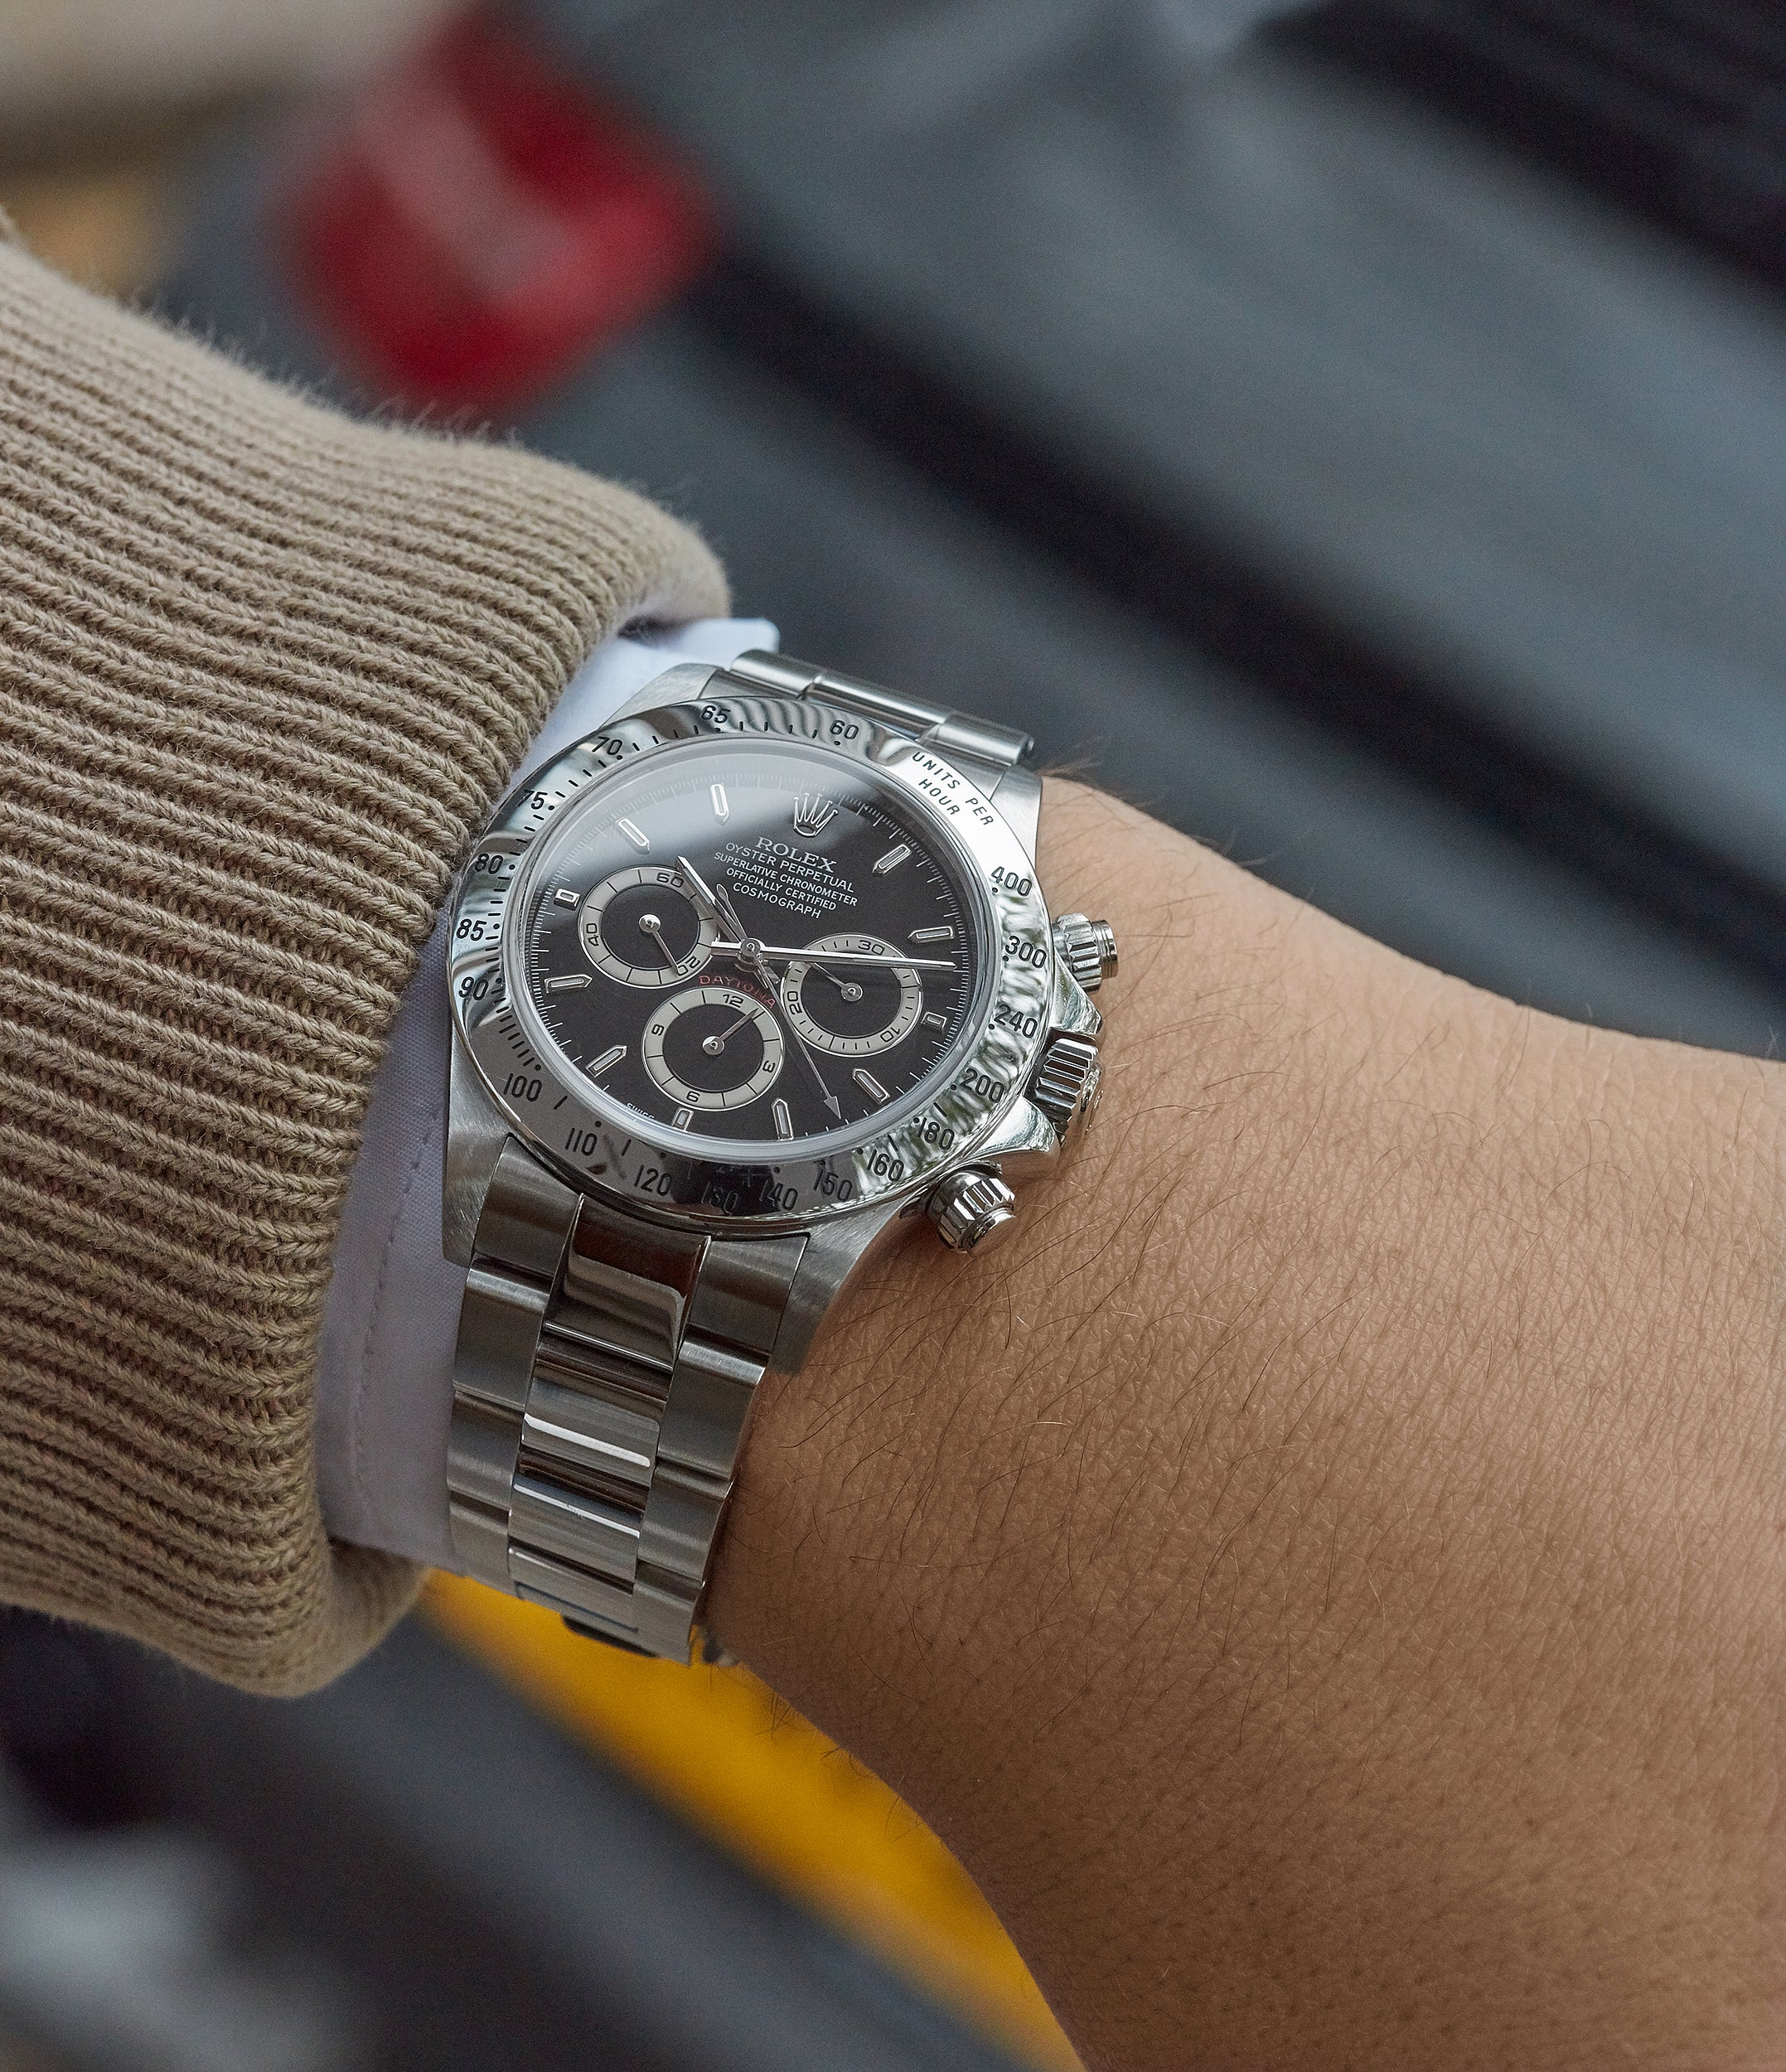 purchase Rolex Zenith Daytona 16520 stainless steel